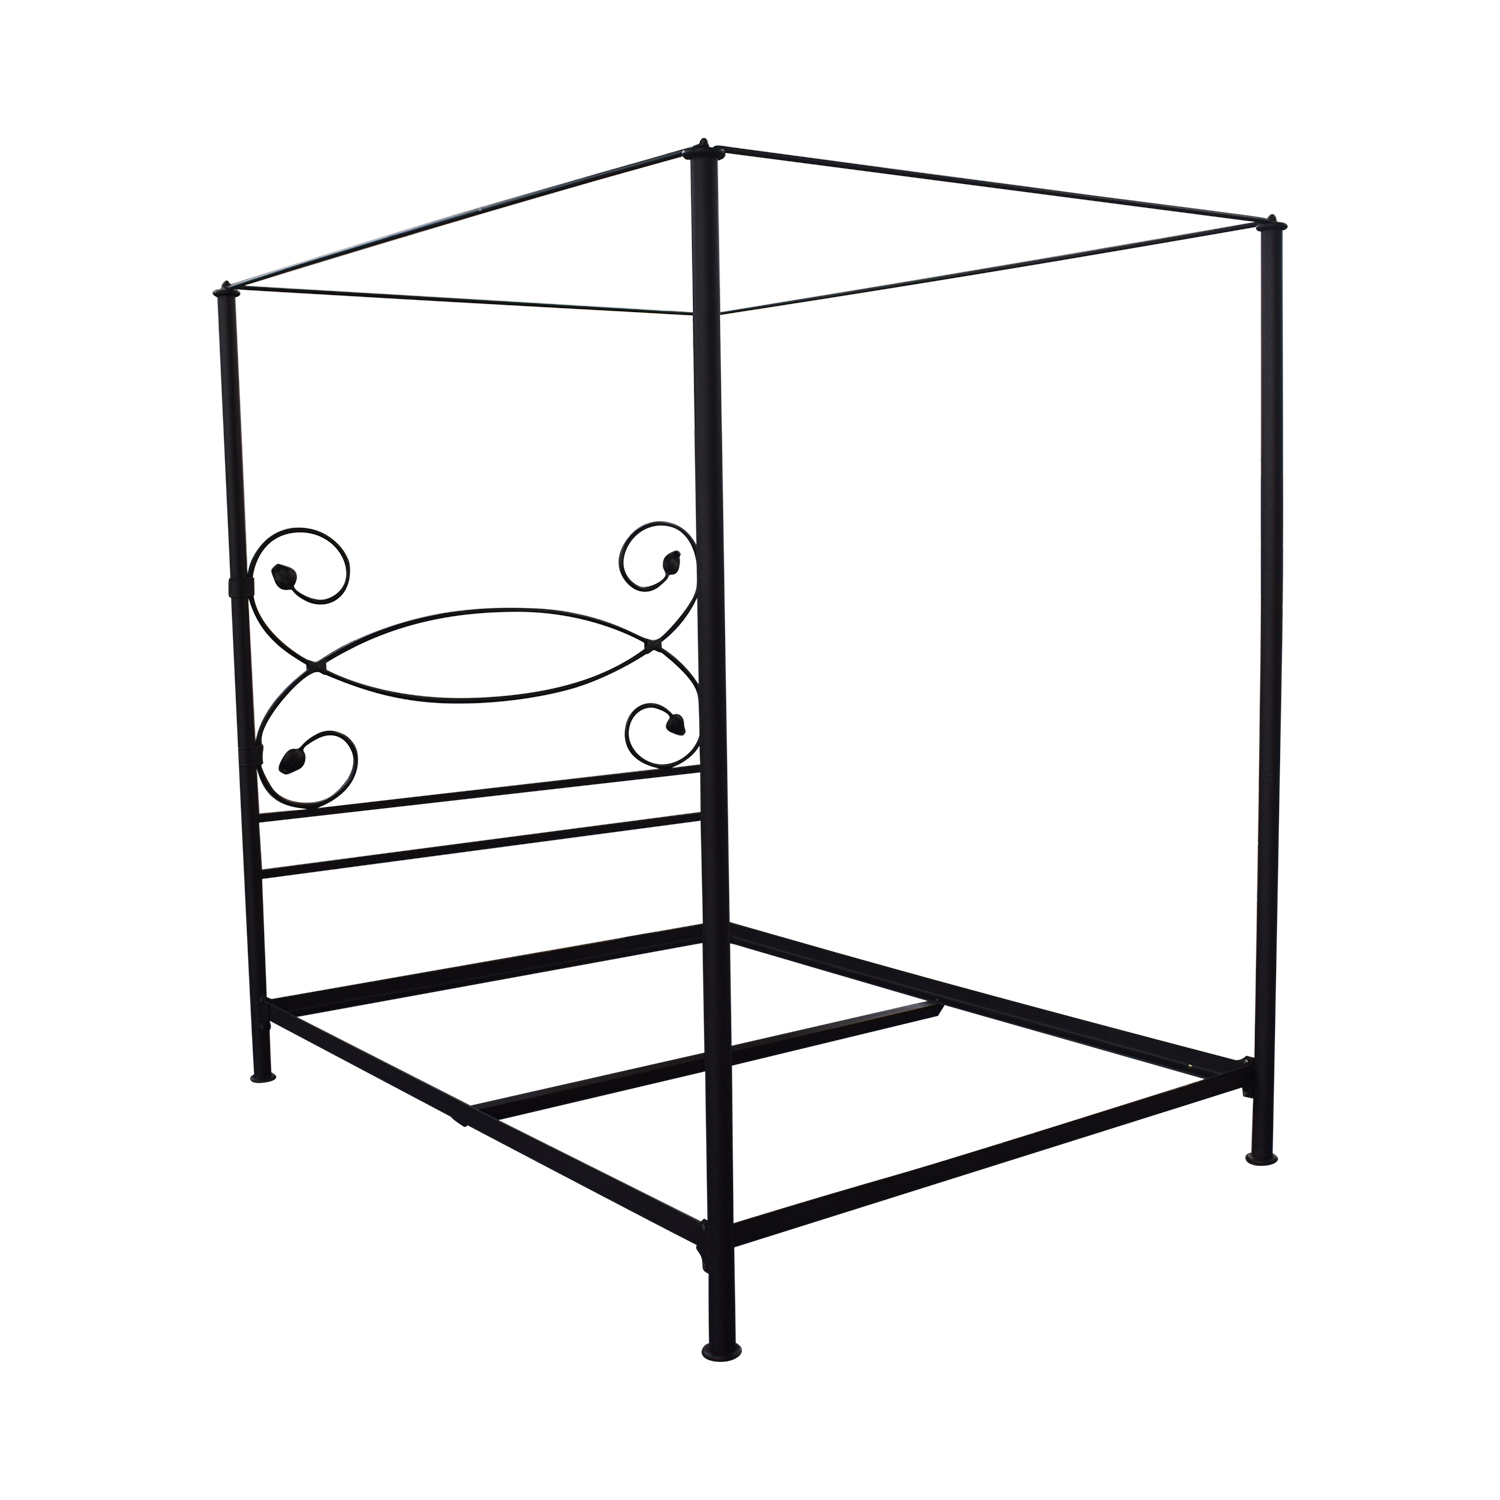 shop Charles P. Rogers Iron Queen Canopy Bed Frame Charles P. Rogers